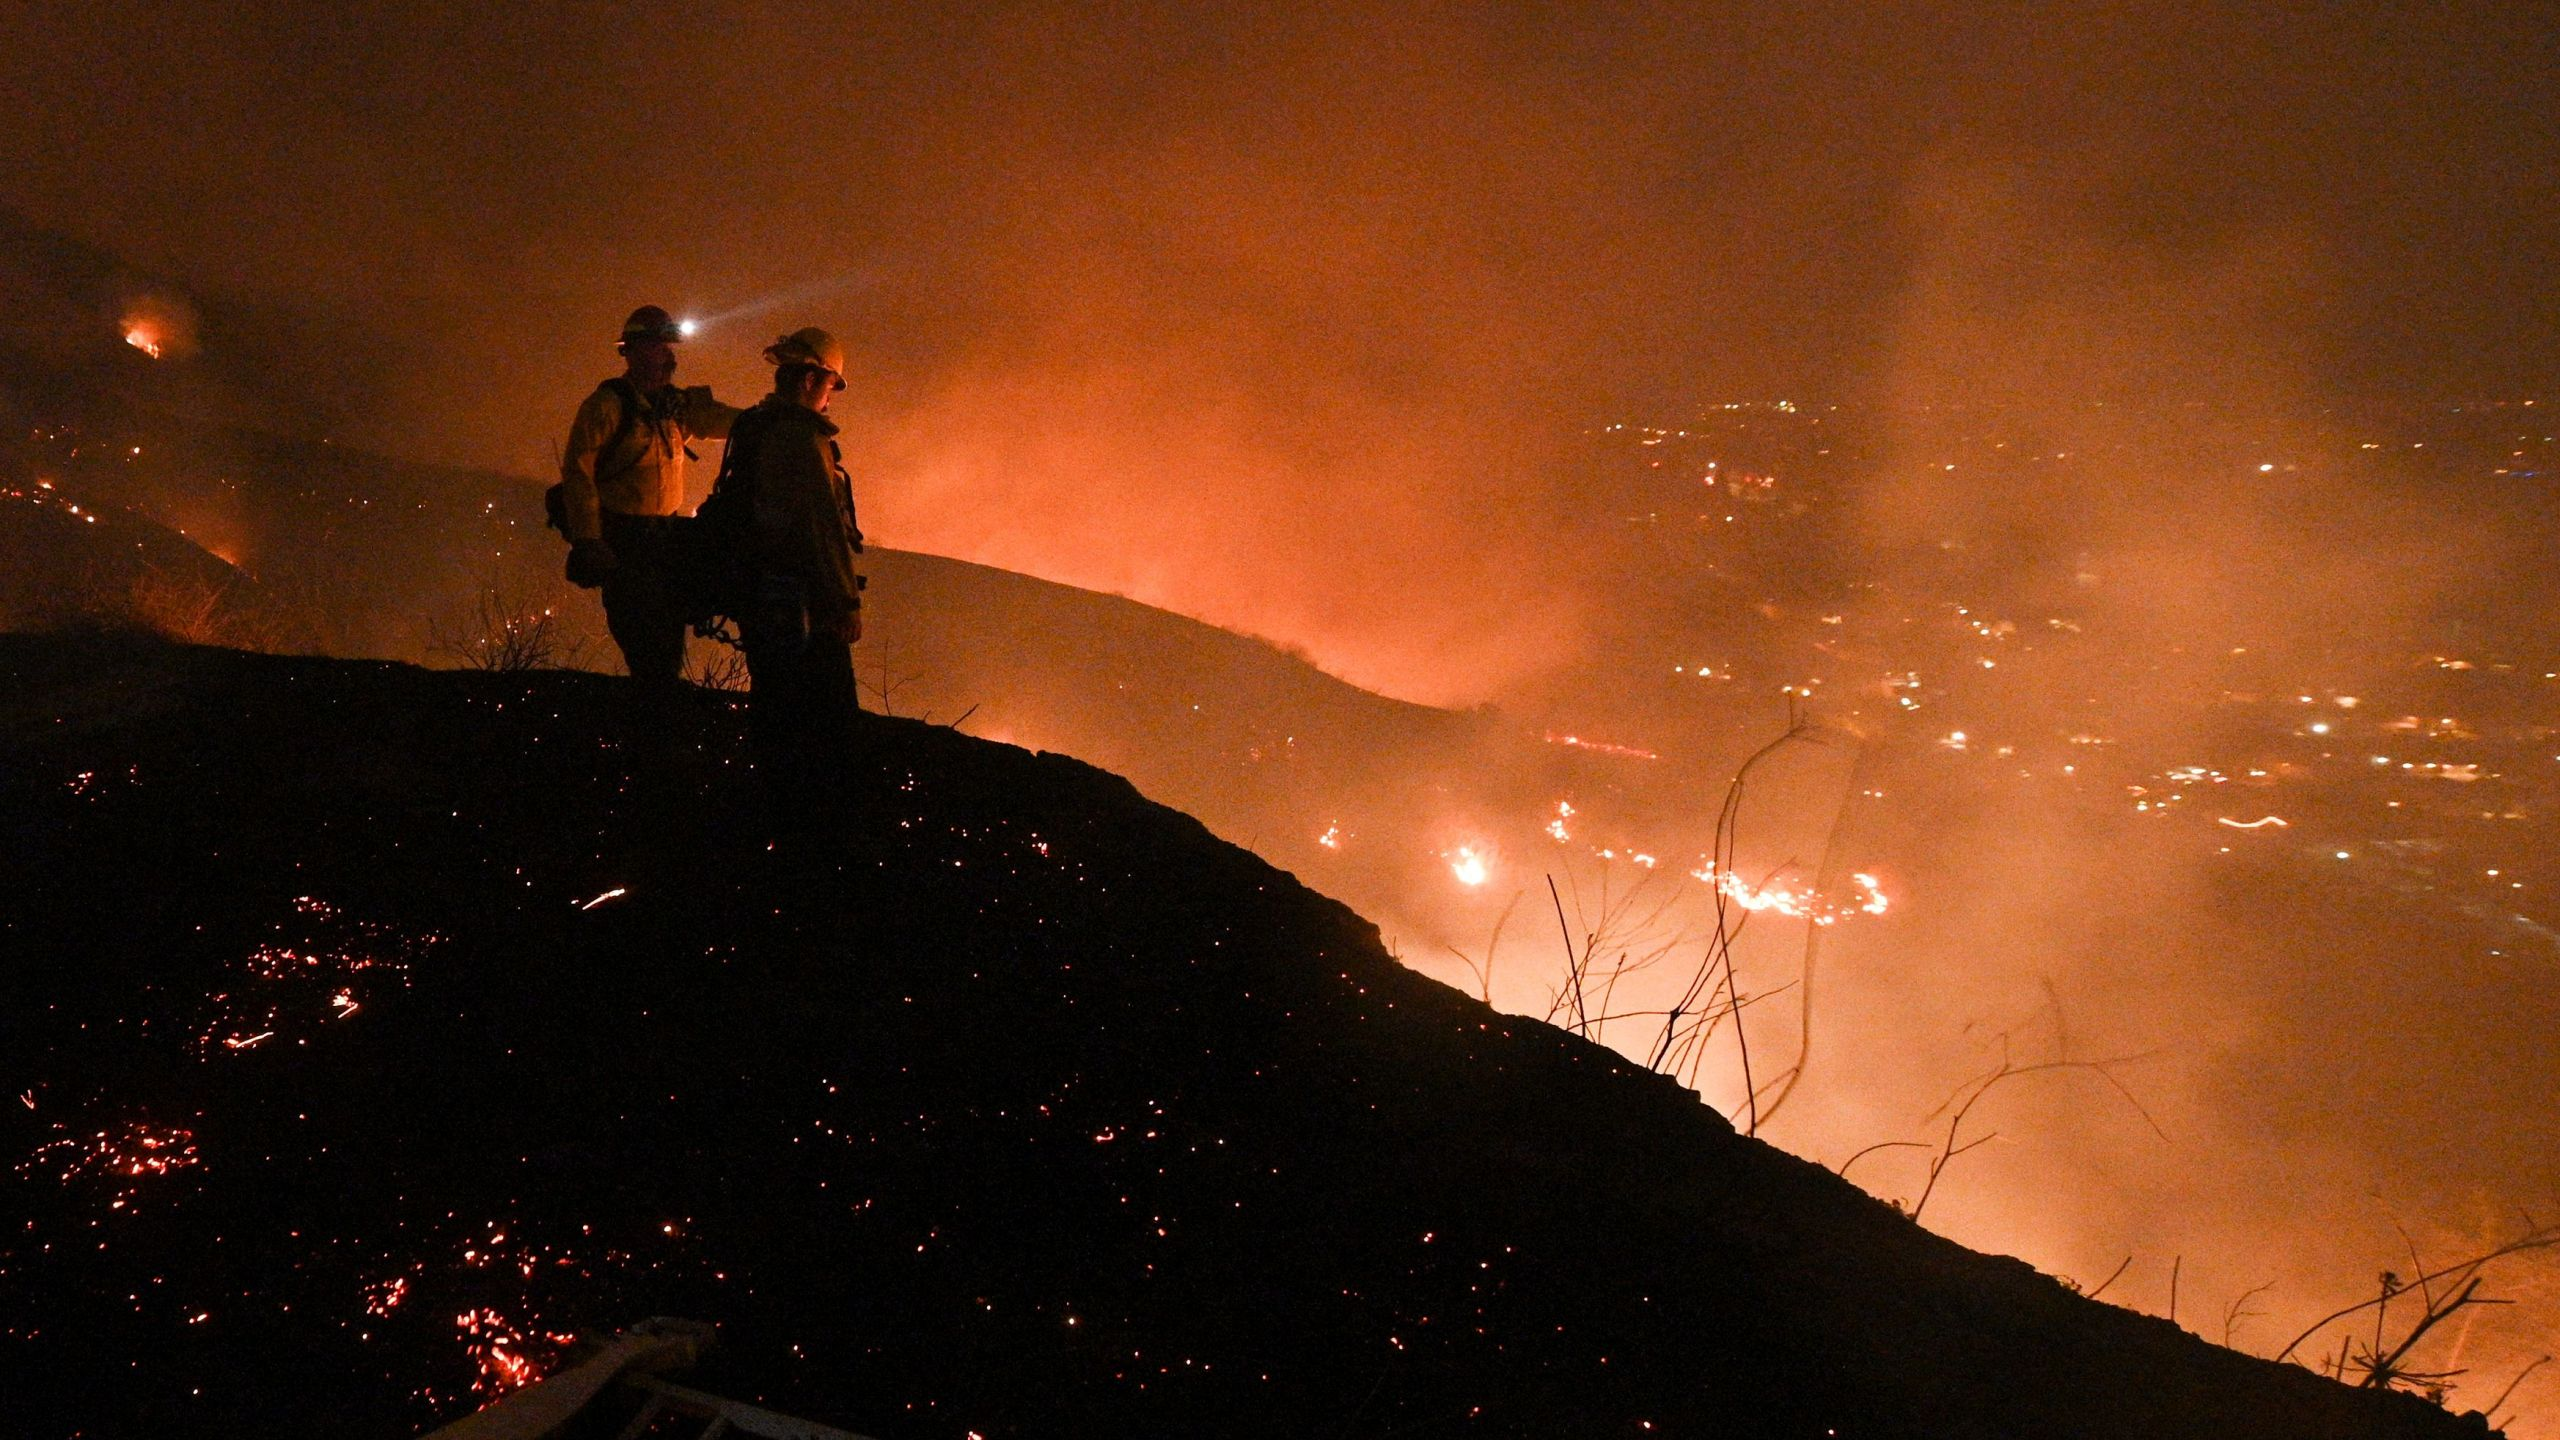 Firefighters look out over a burning hillside as they fight the Blue Ridge Fire in Yorba Linda on Oct. 26, 2020. (Robyn Beck / AFP / Getty Images)